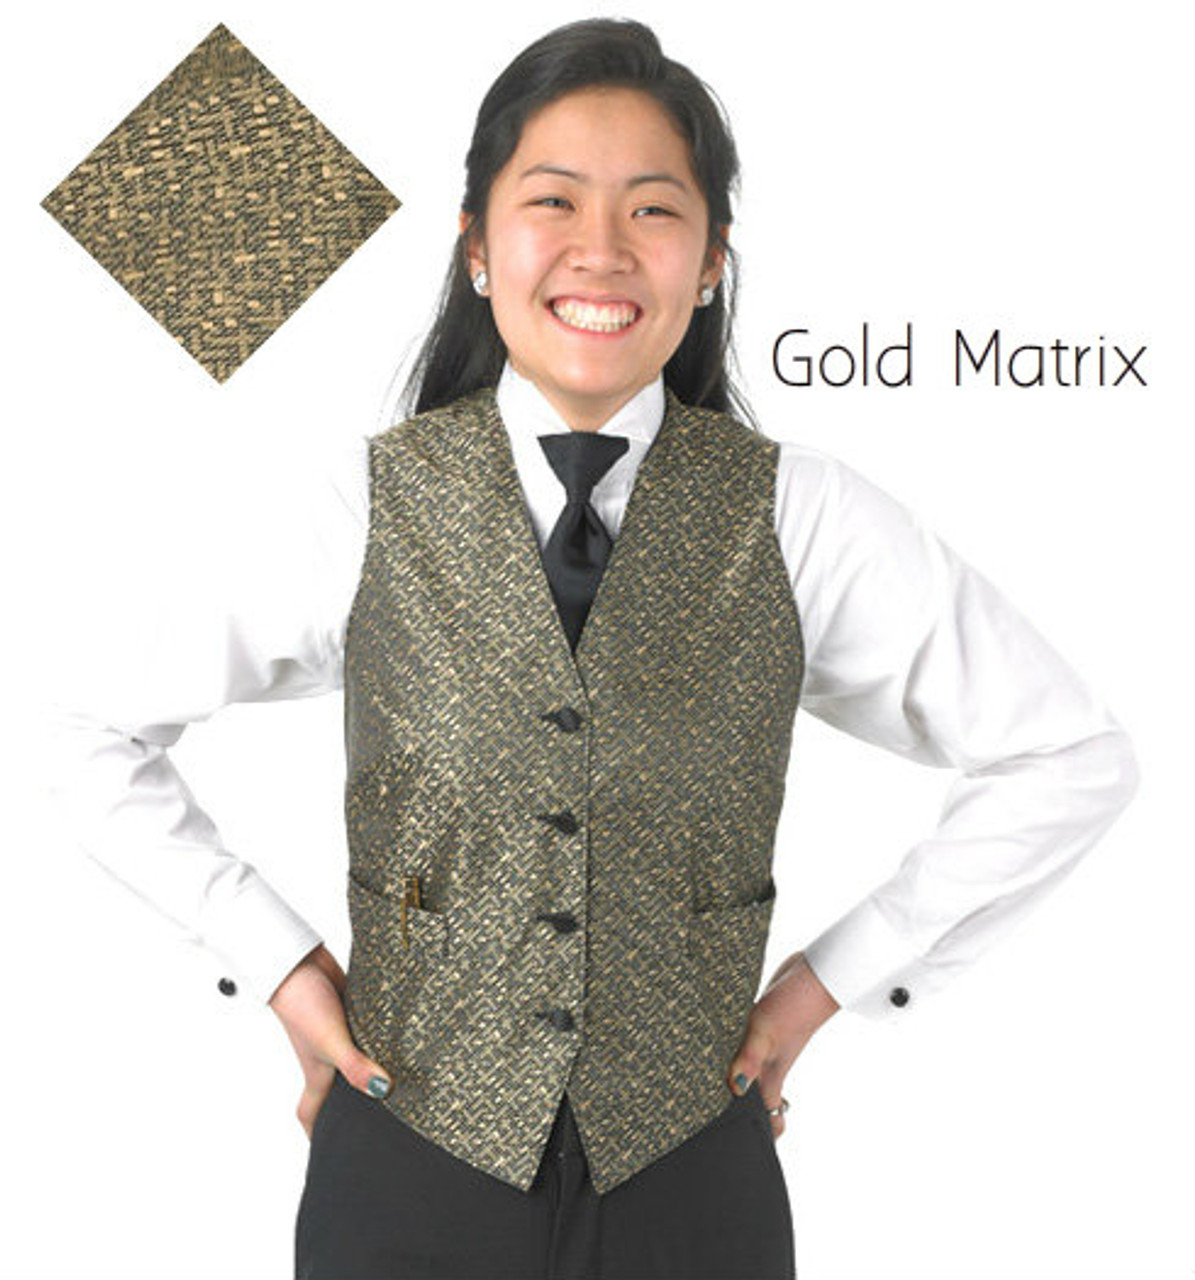 Gold Matrix